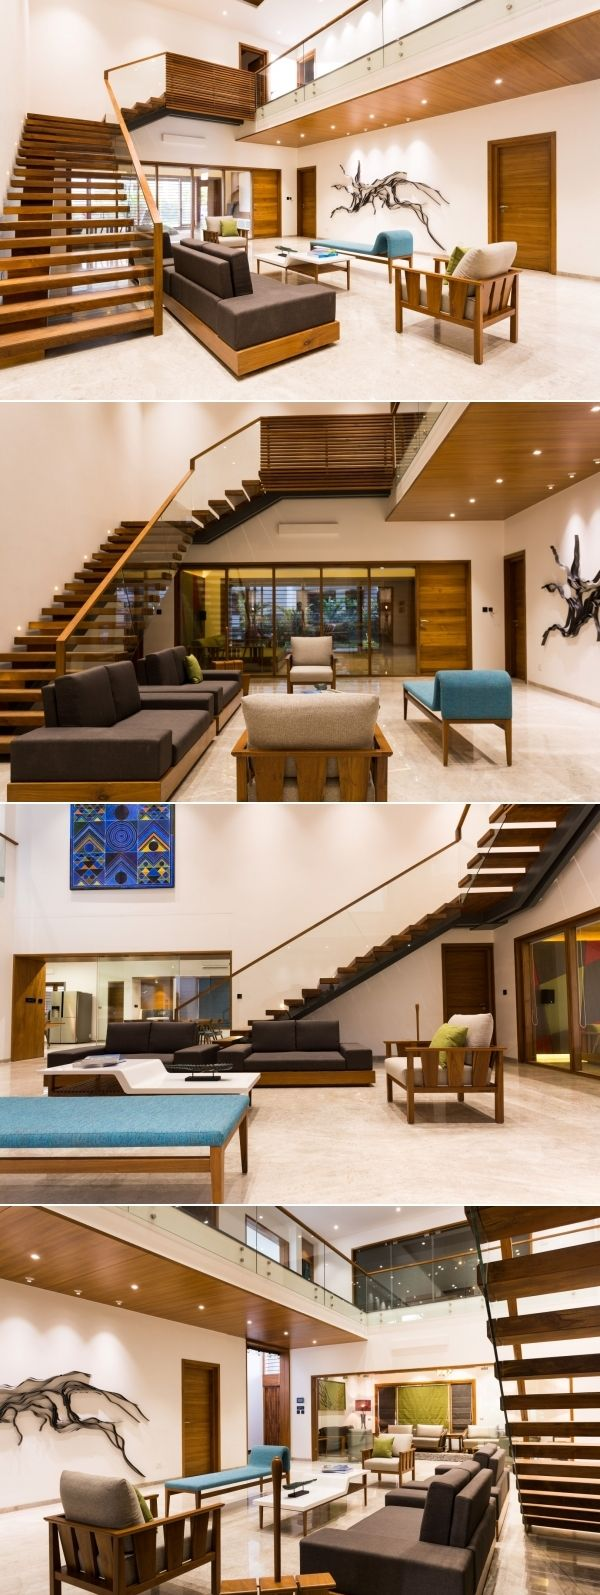 Images Of Living Room Interior Design Prepossessing Best 25 Drawing Room Interior Design Ideas On Pinterest  Drawing Inspiration